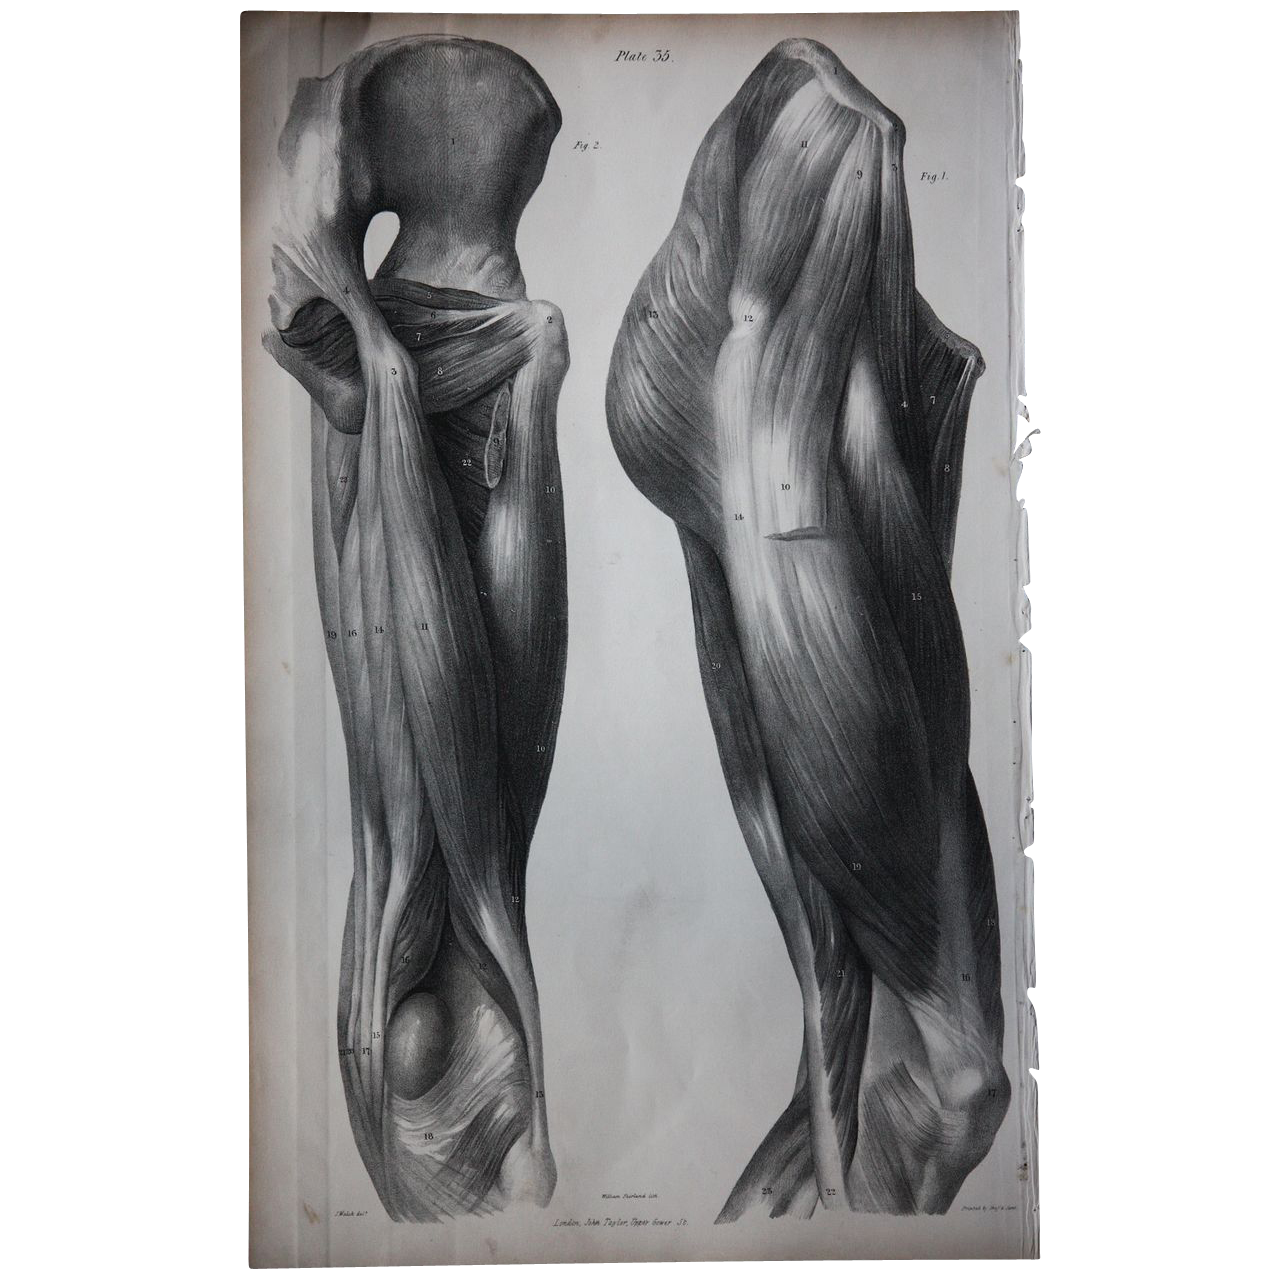 Antique Lithographic Prints (4) - Human Muscle - 19th Century Medical / Anatomy